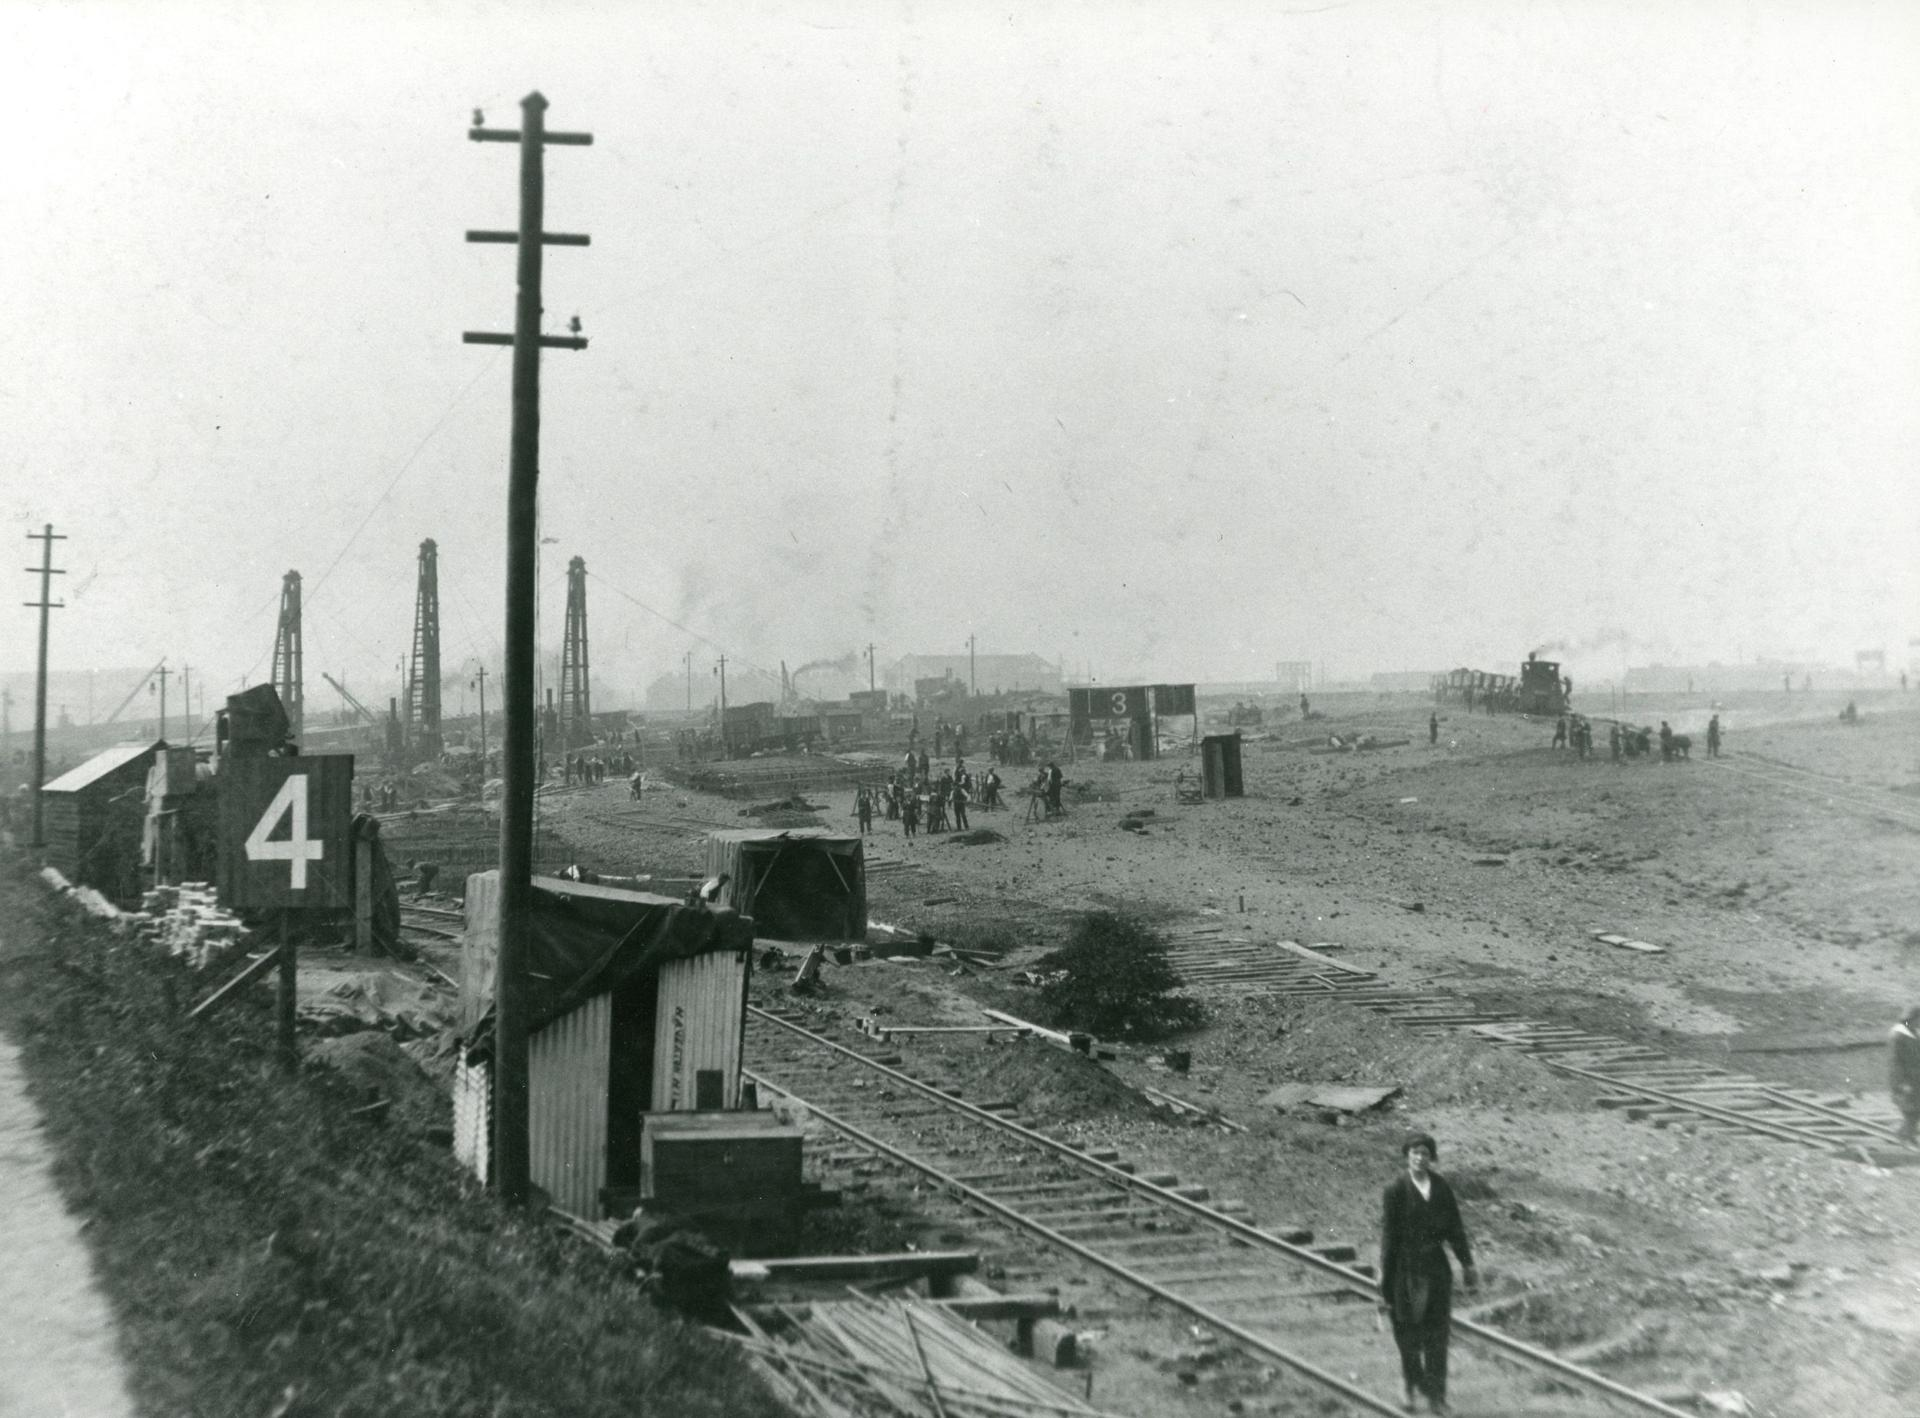 Black and white photograph of Furness shipyards